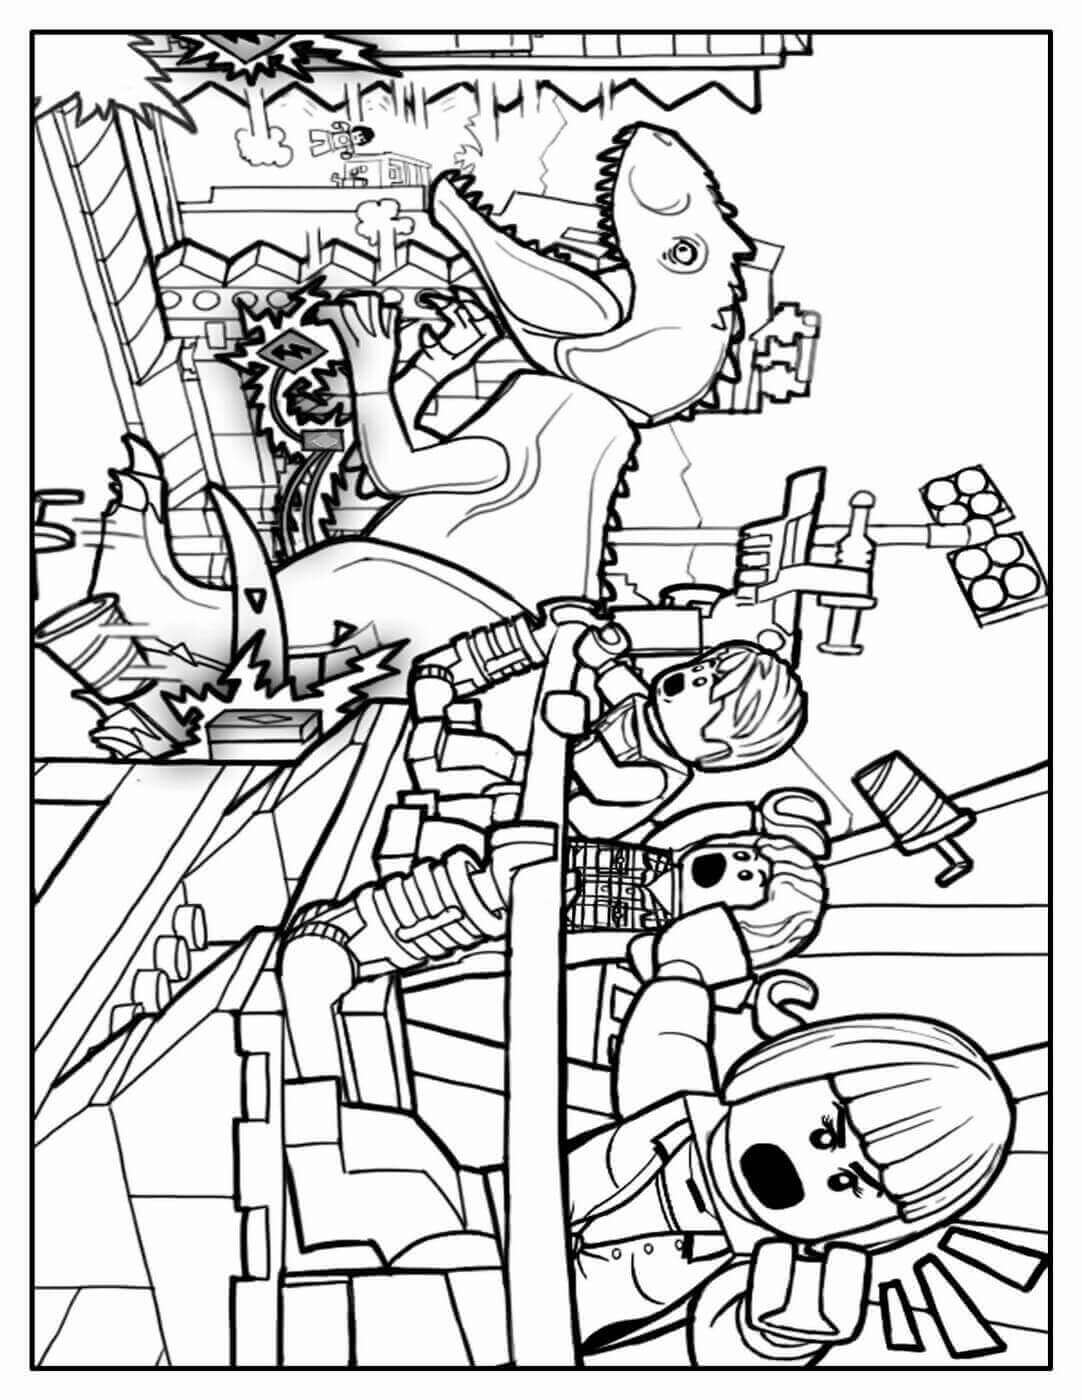 Jurassic World Lego Coloring Pages : jurassic, world, coloring, pages, Printable, Jurassic, World, Coloring, Pages